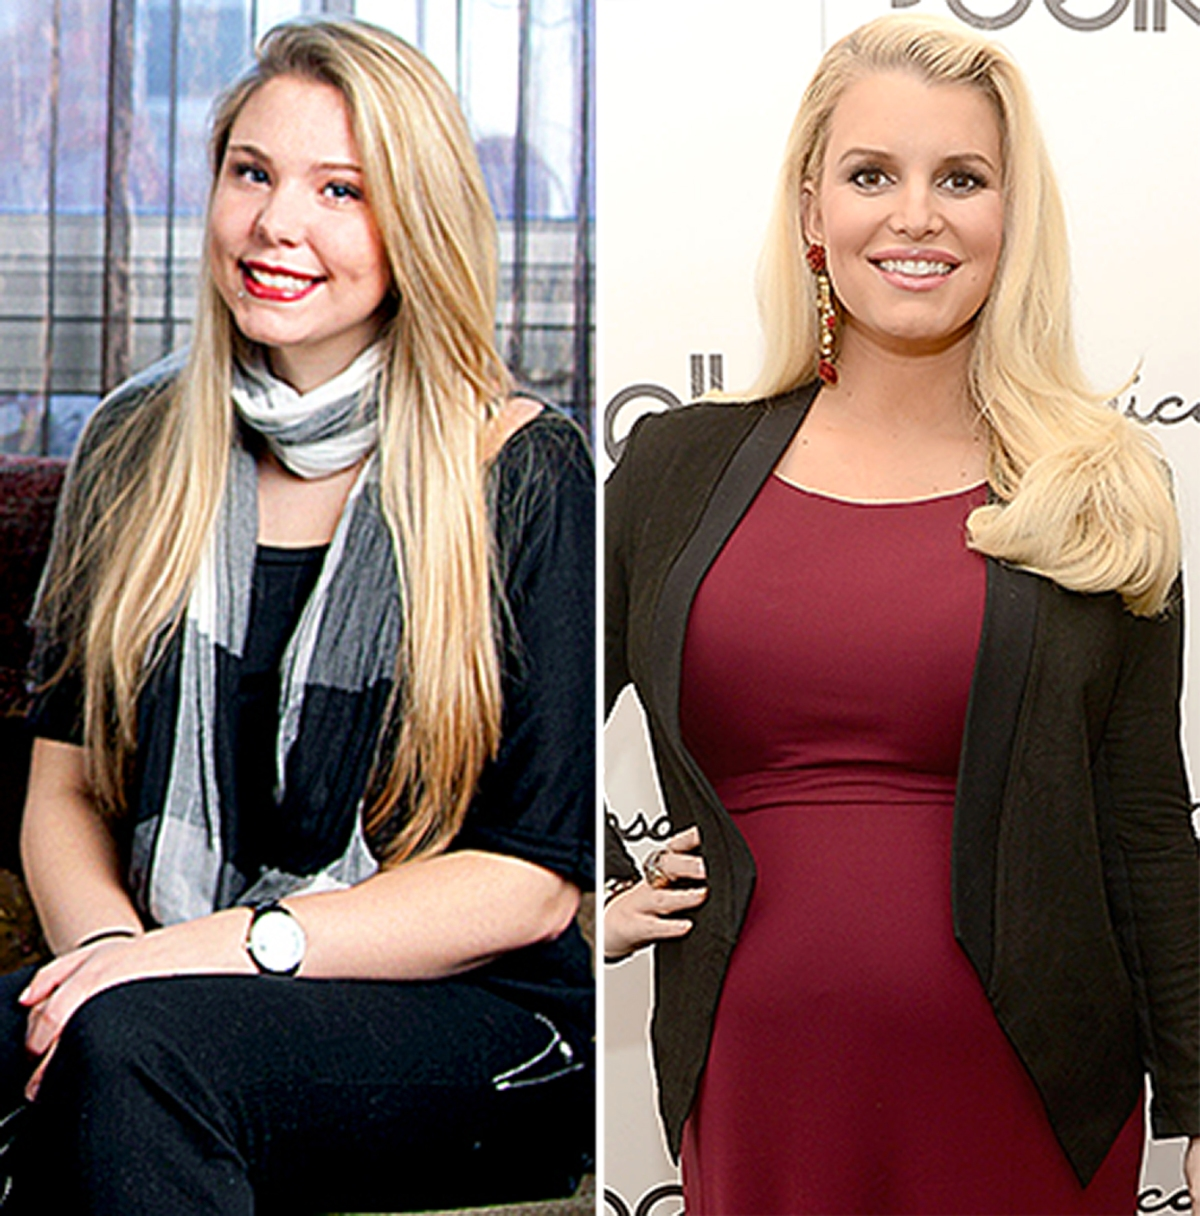 Jessica Simpson Flaunts Weight Loss in Swimsuit, Kailyn Lowry Gives Birth: Top 5 Weekend Stories